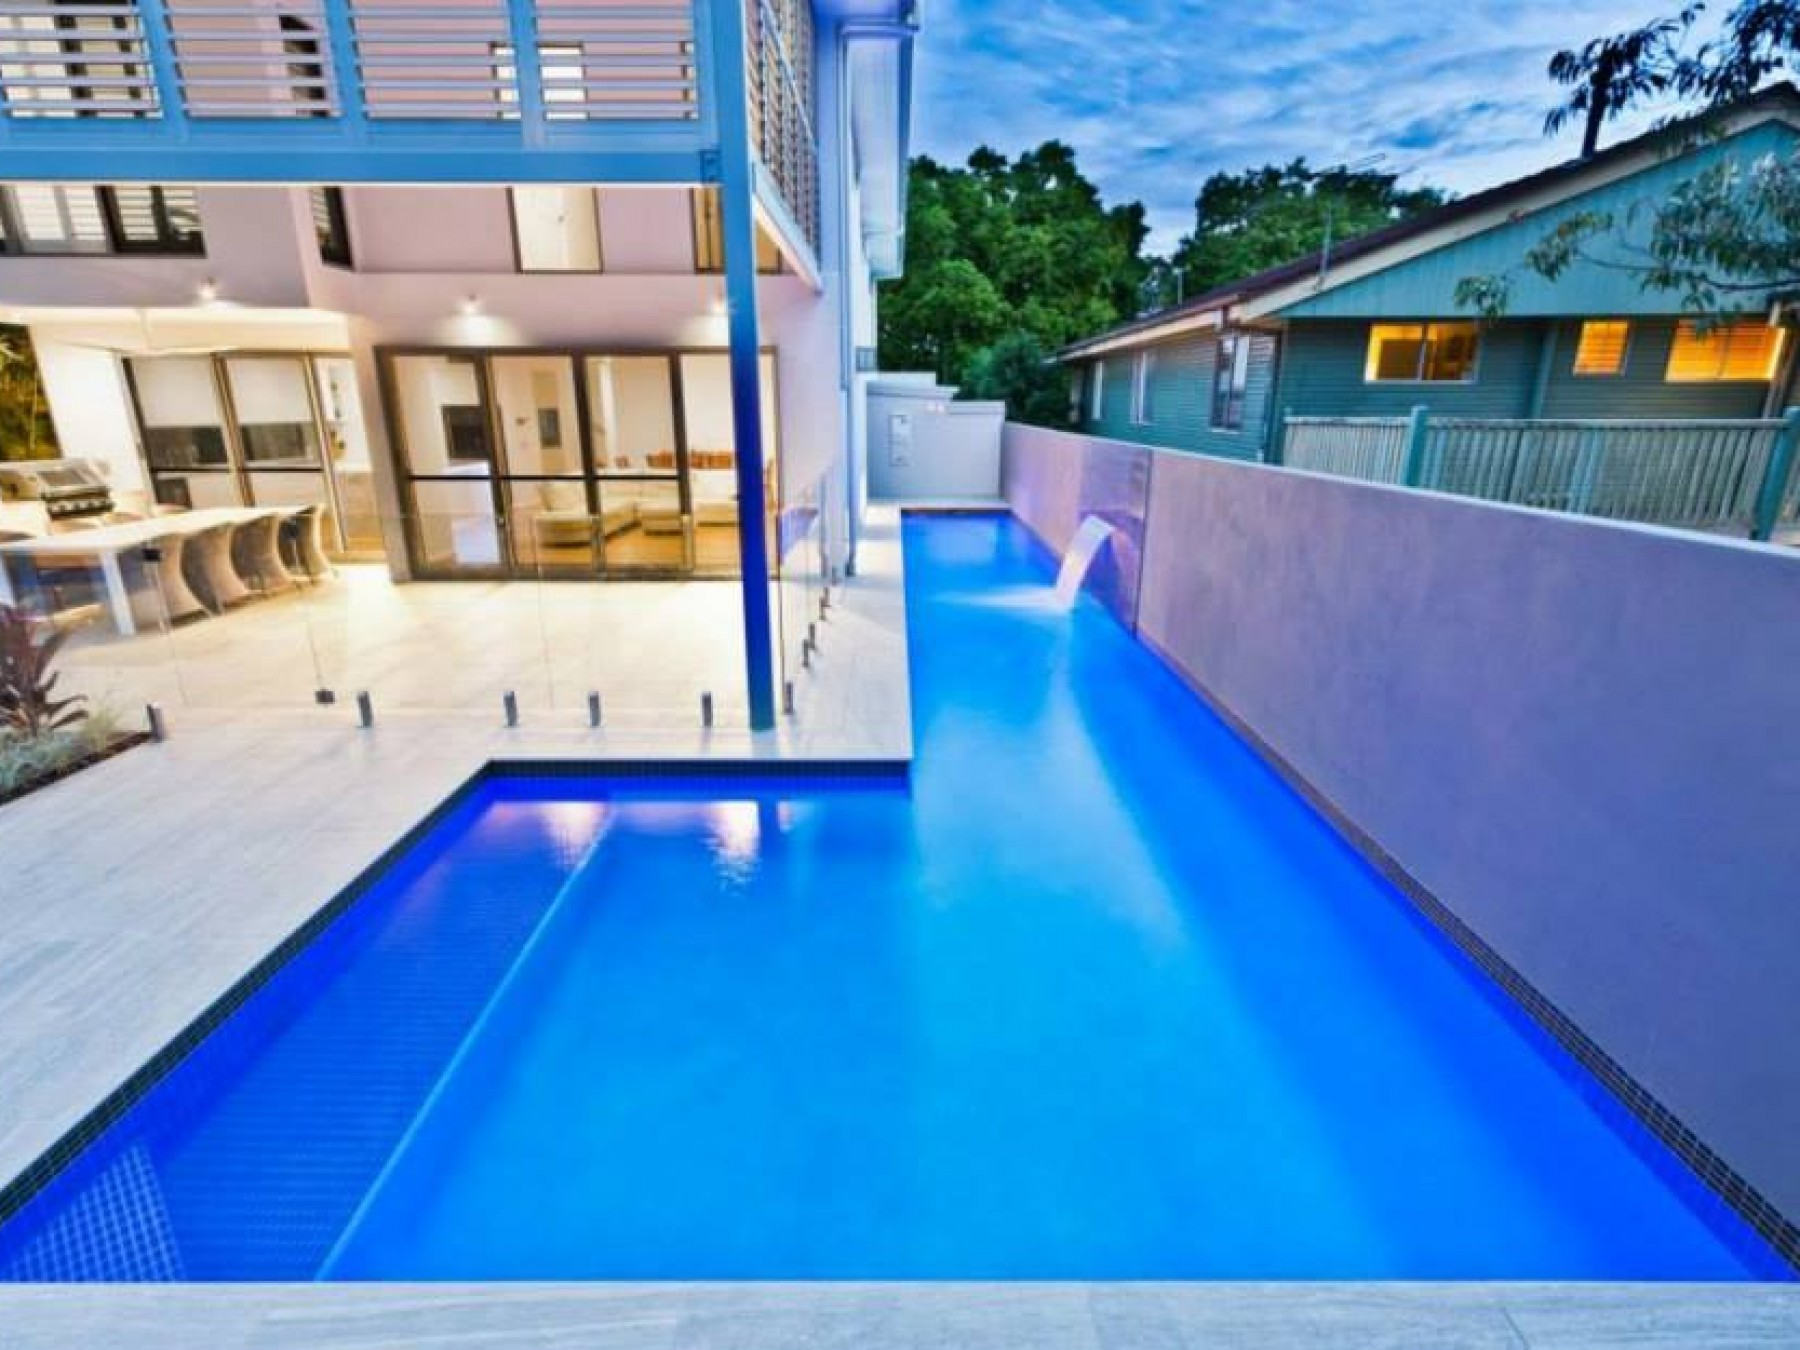 Selling or Leasing a pool in East Ipswich